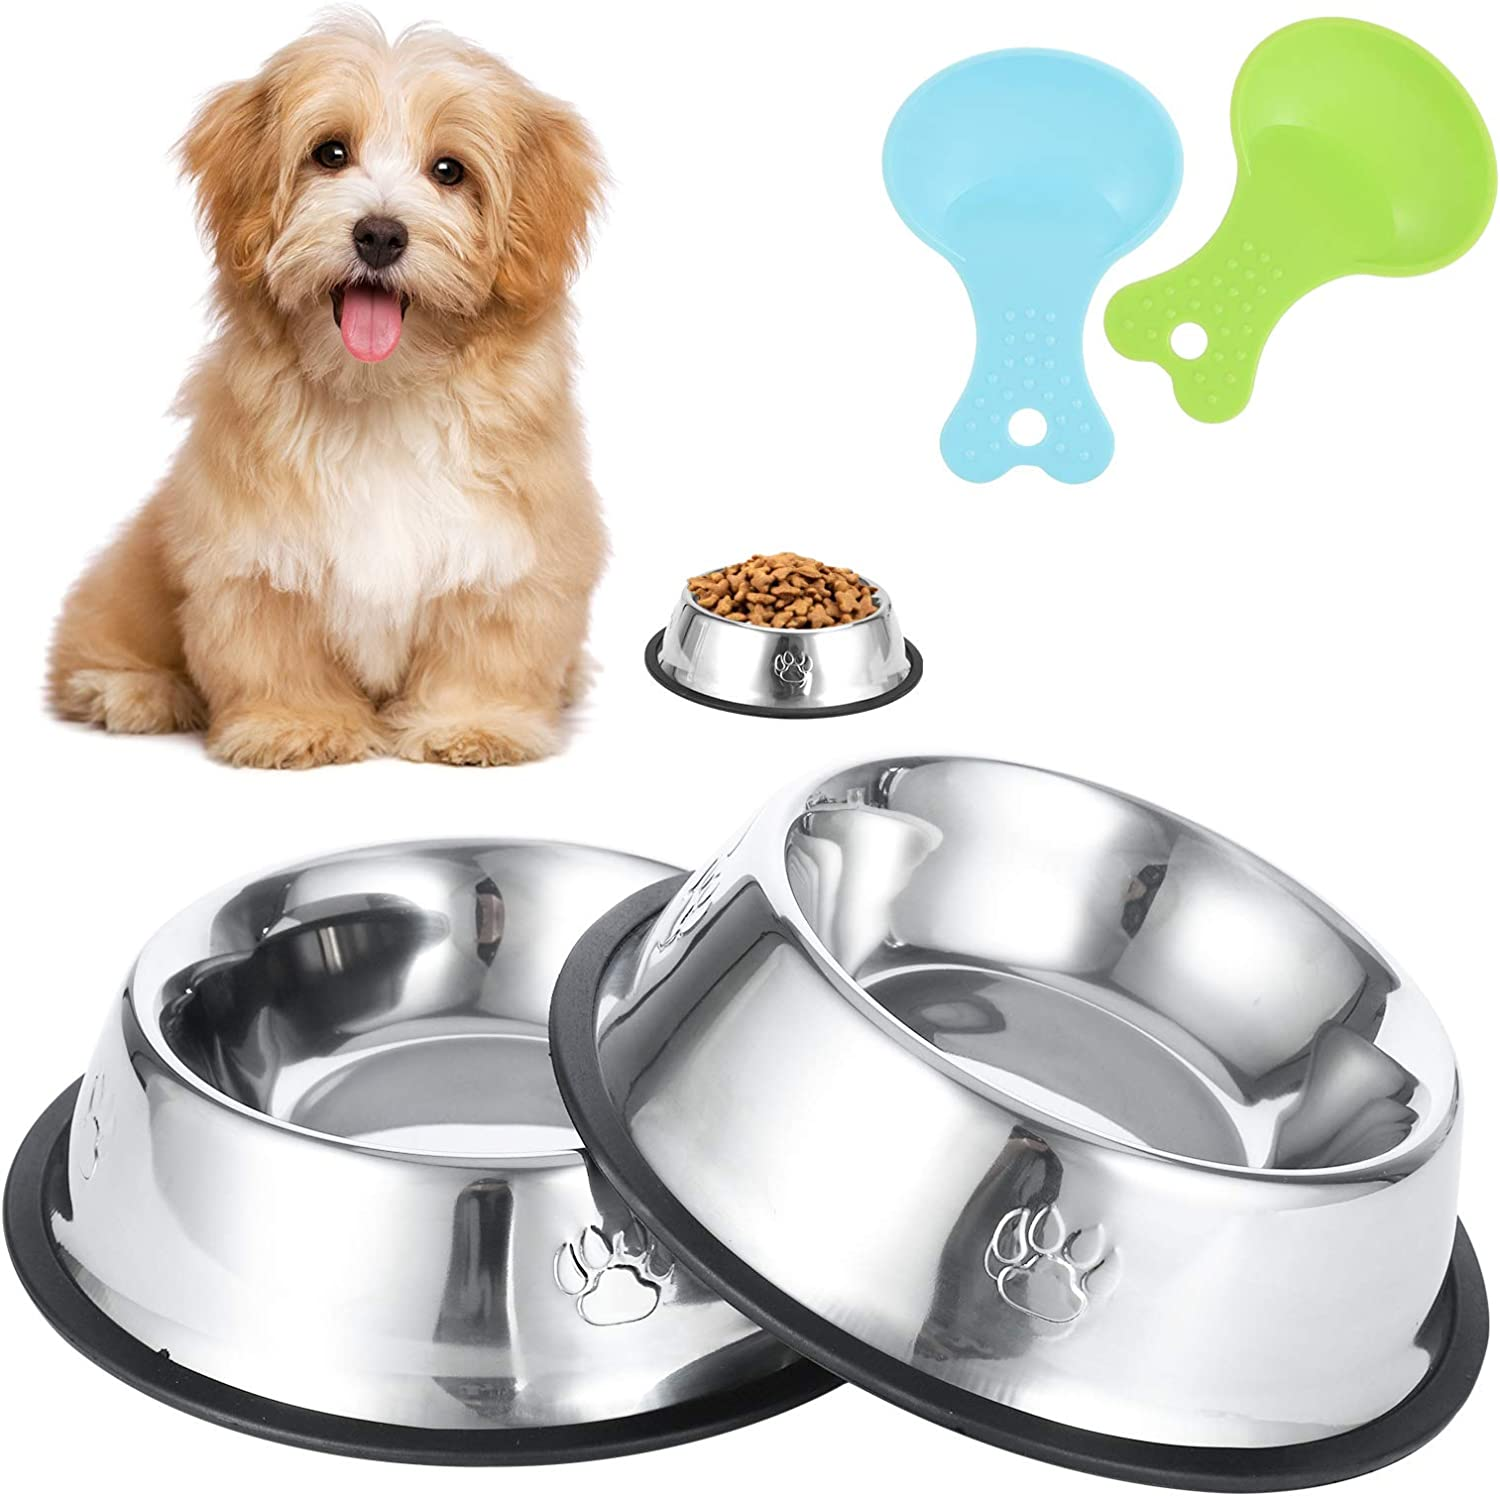 Inscape Data 2 Pack Dog Bowl Stainless Steel Dog Food and Water Bowls Pet Feeder Bowls with Spoons, Non-Slip Rubber Base - Easy to Clean